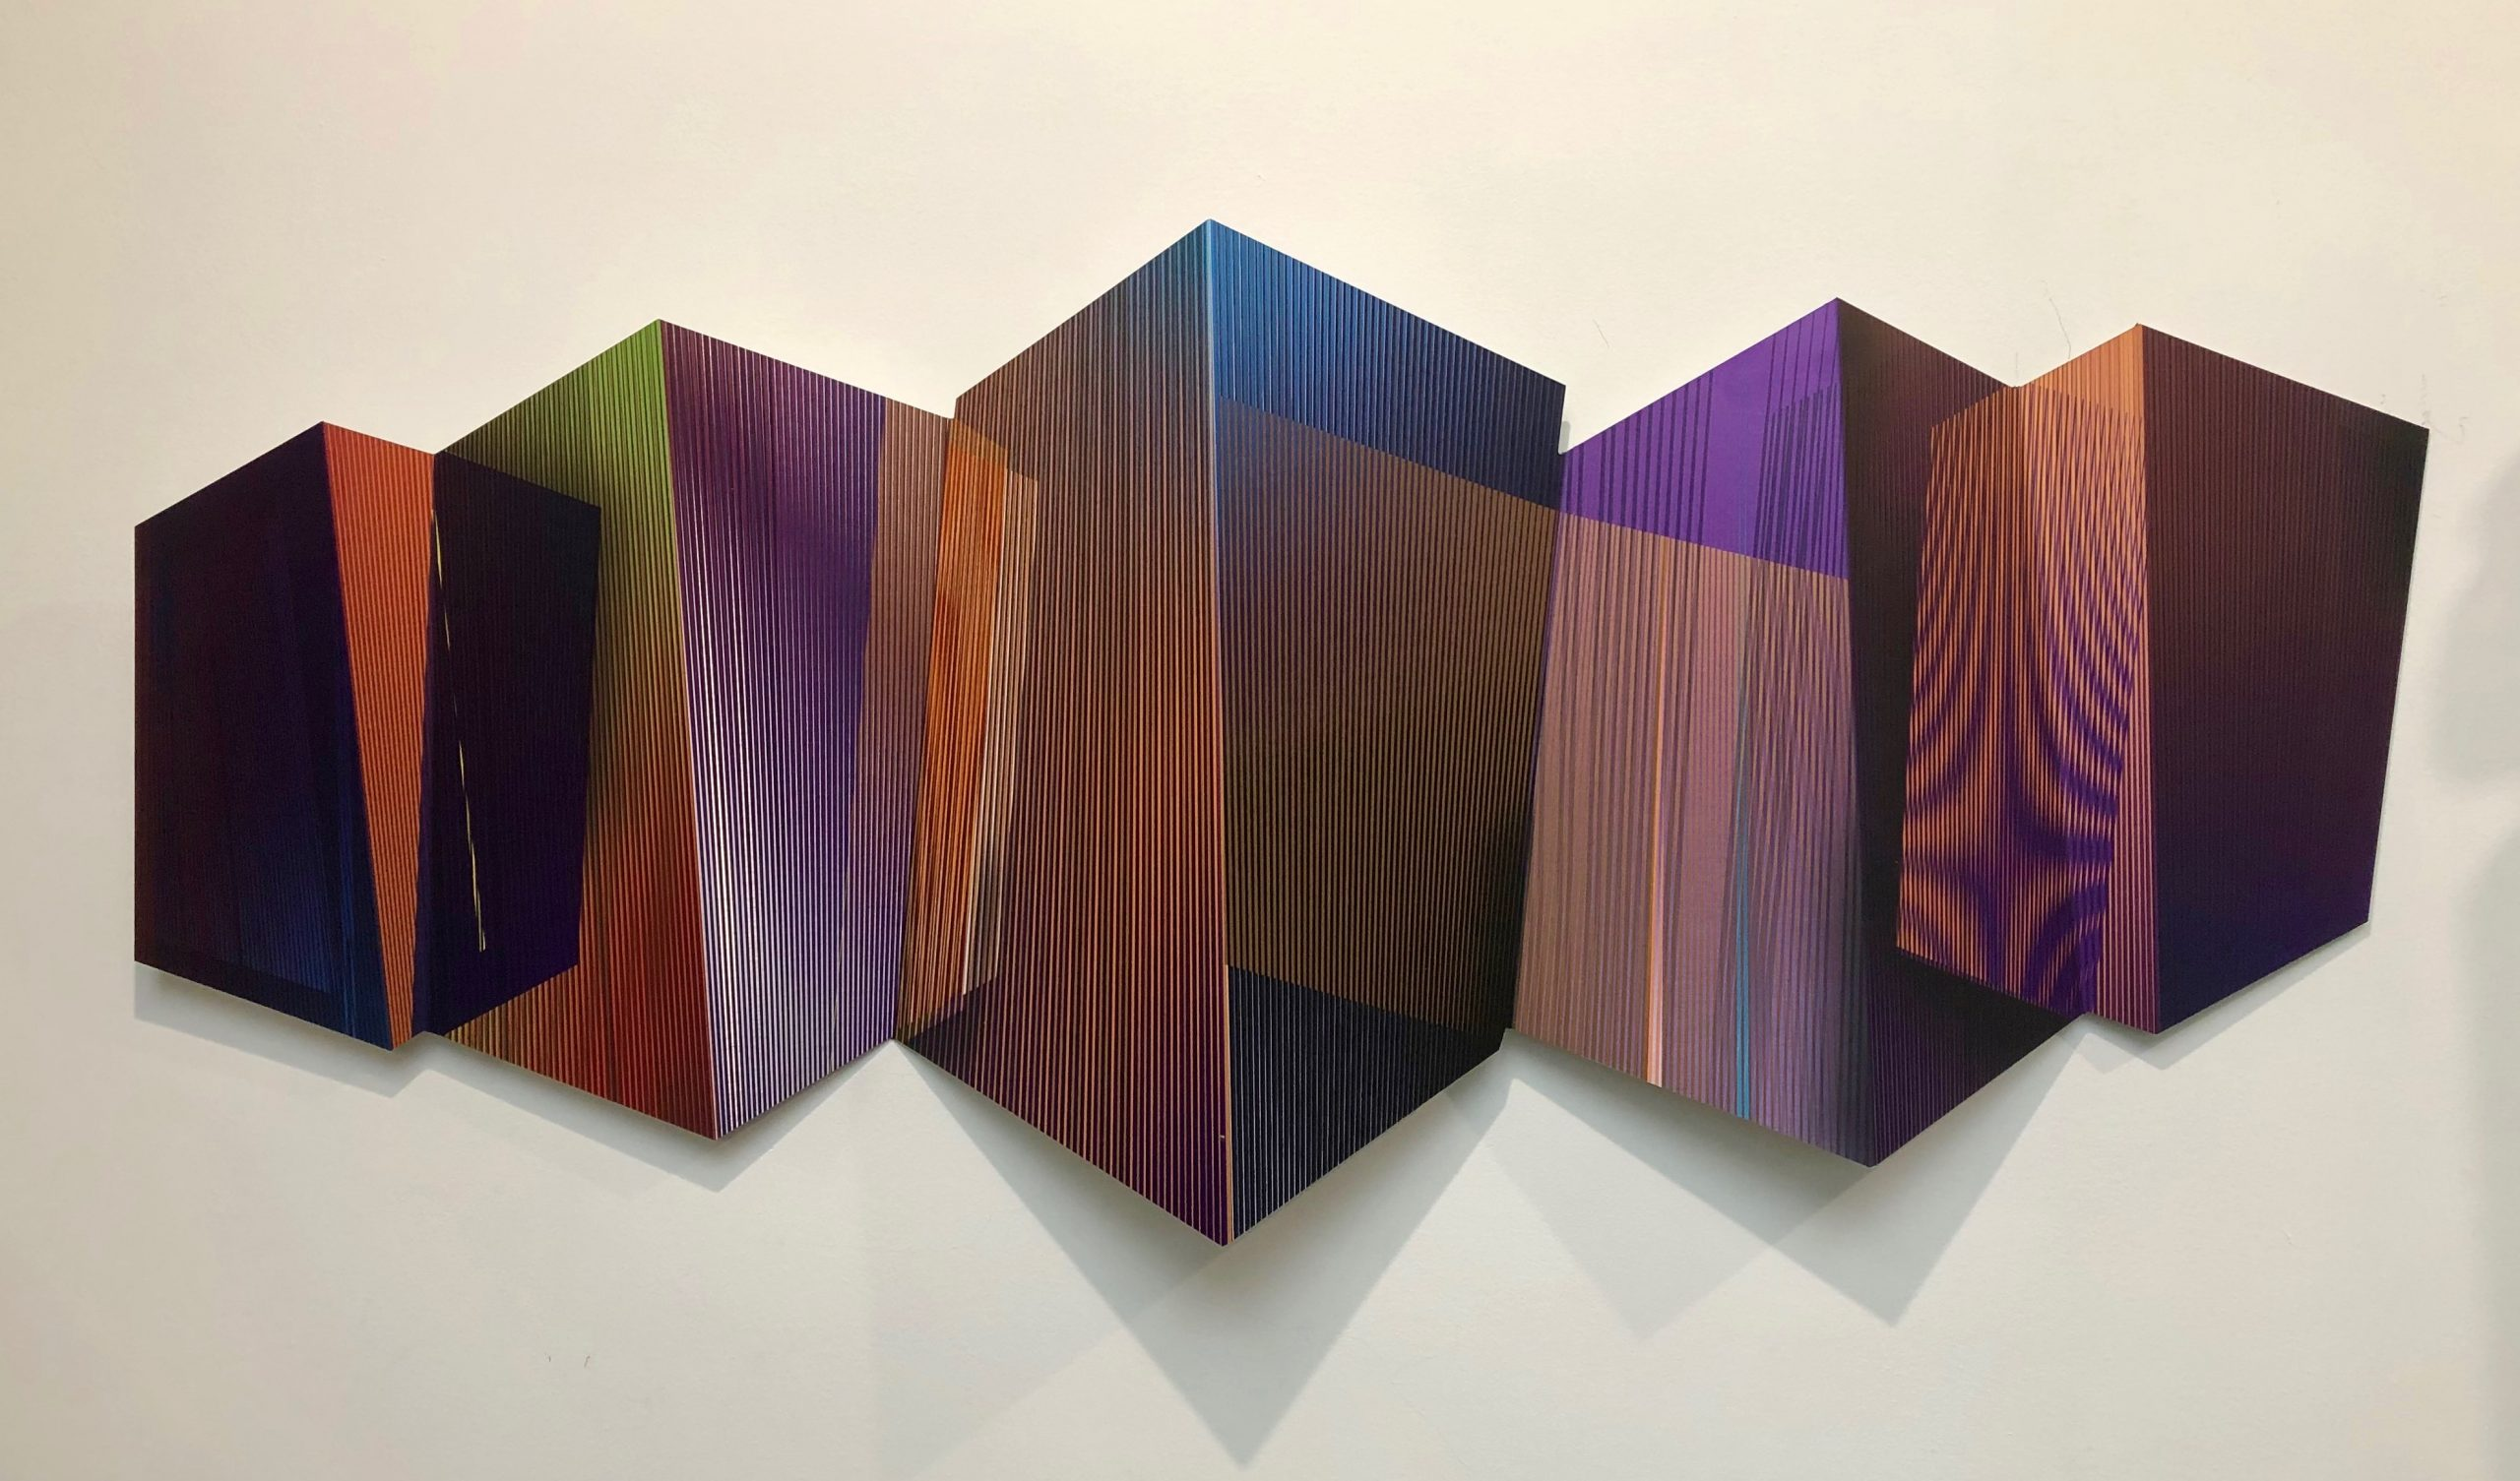 Melting incomplementary purple 60 x 150 cm. 2